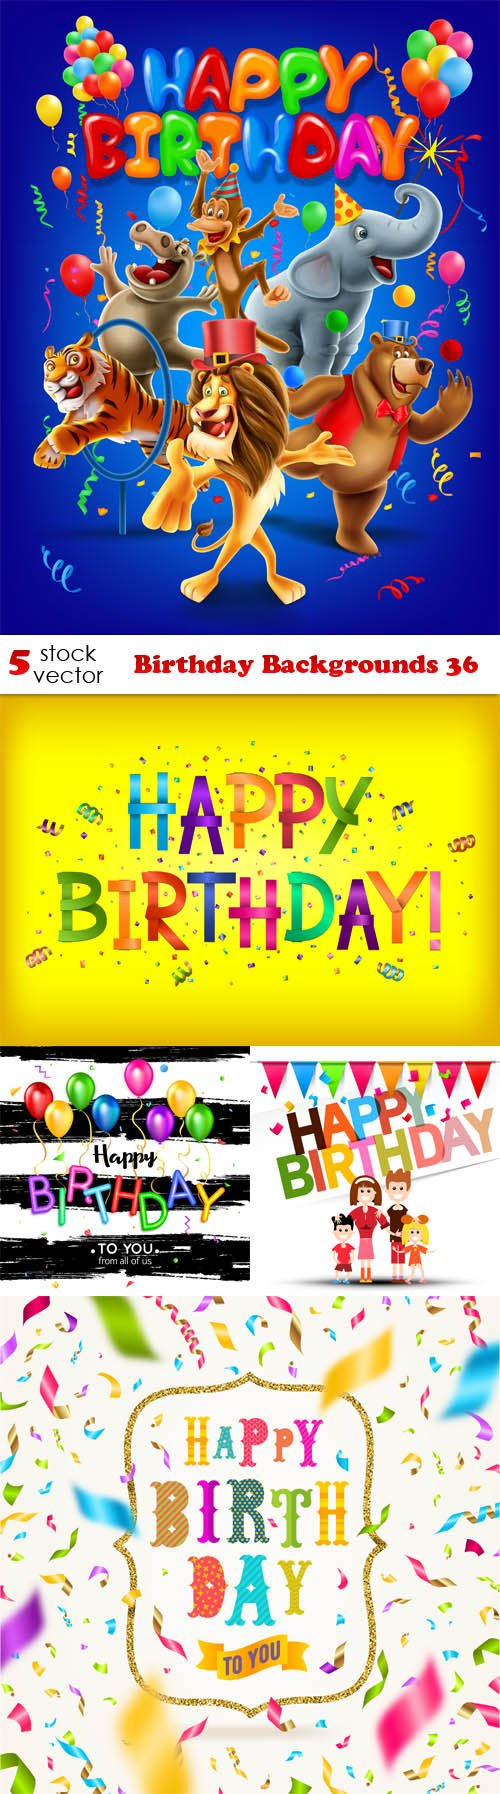 Vectors - Birthday Backgrounds 36